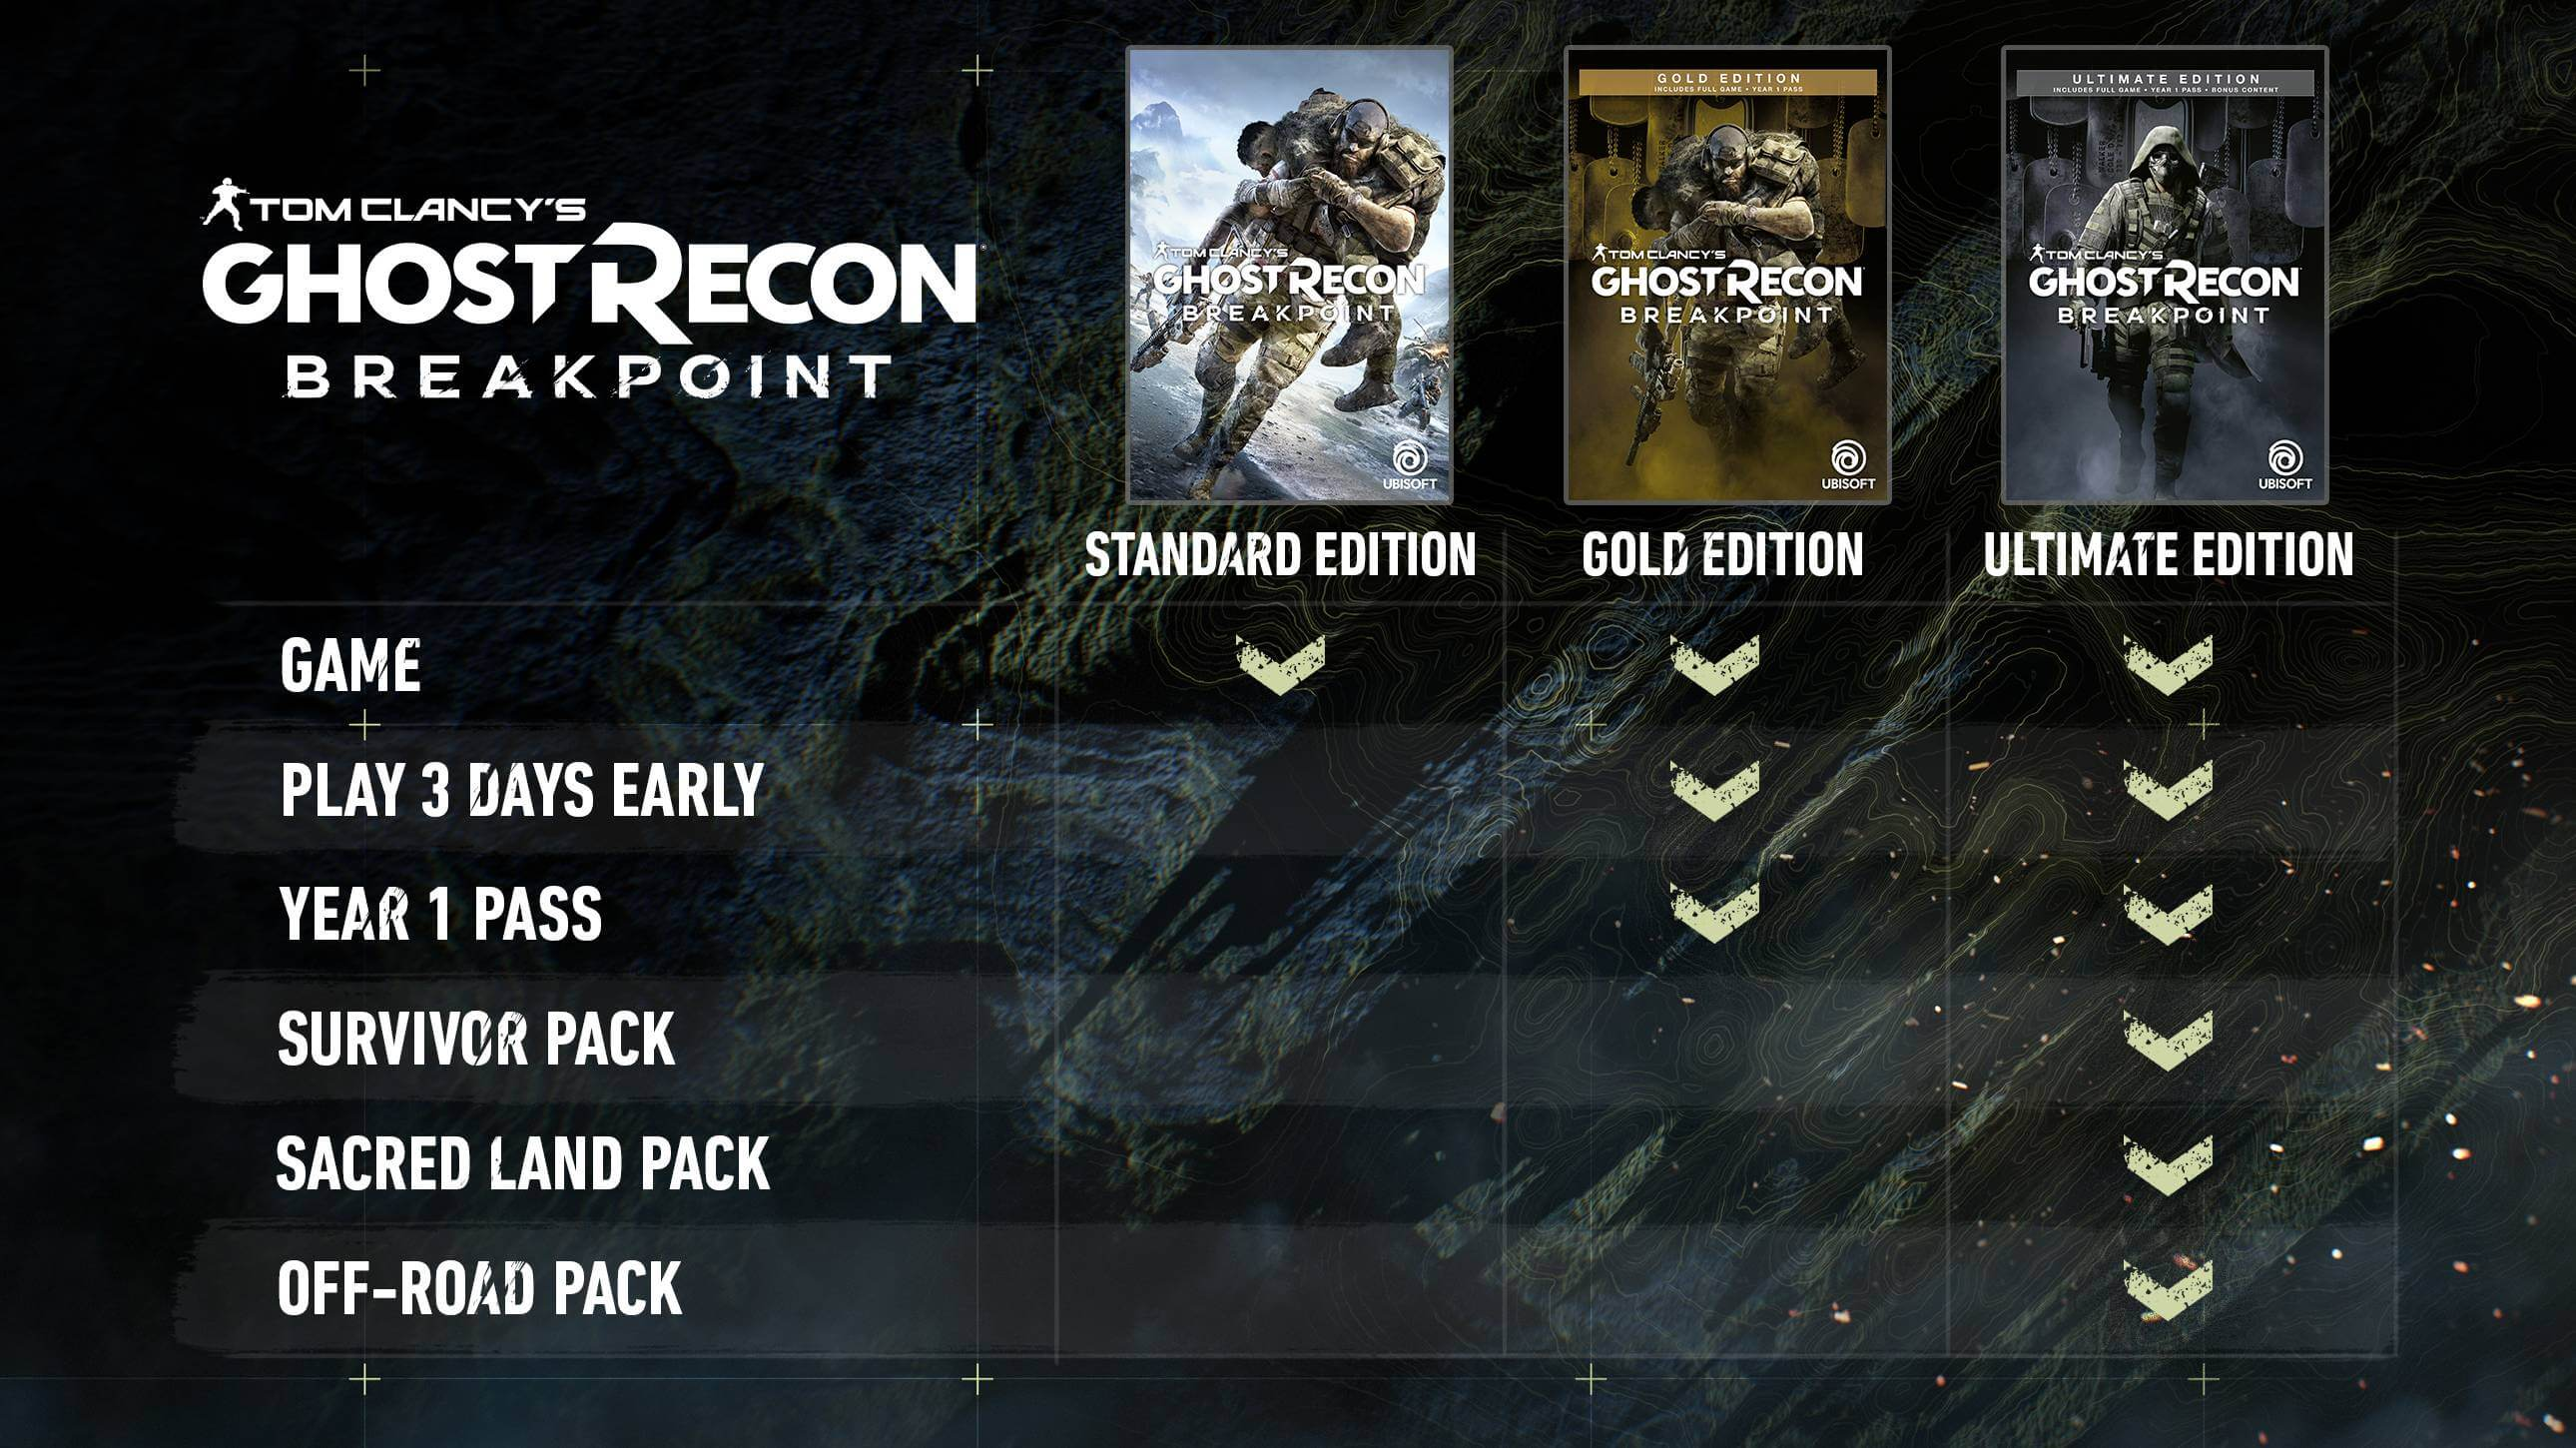 Tom Clancy's Ghost Recon Breakpoint Comparison